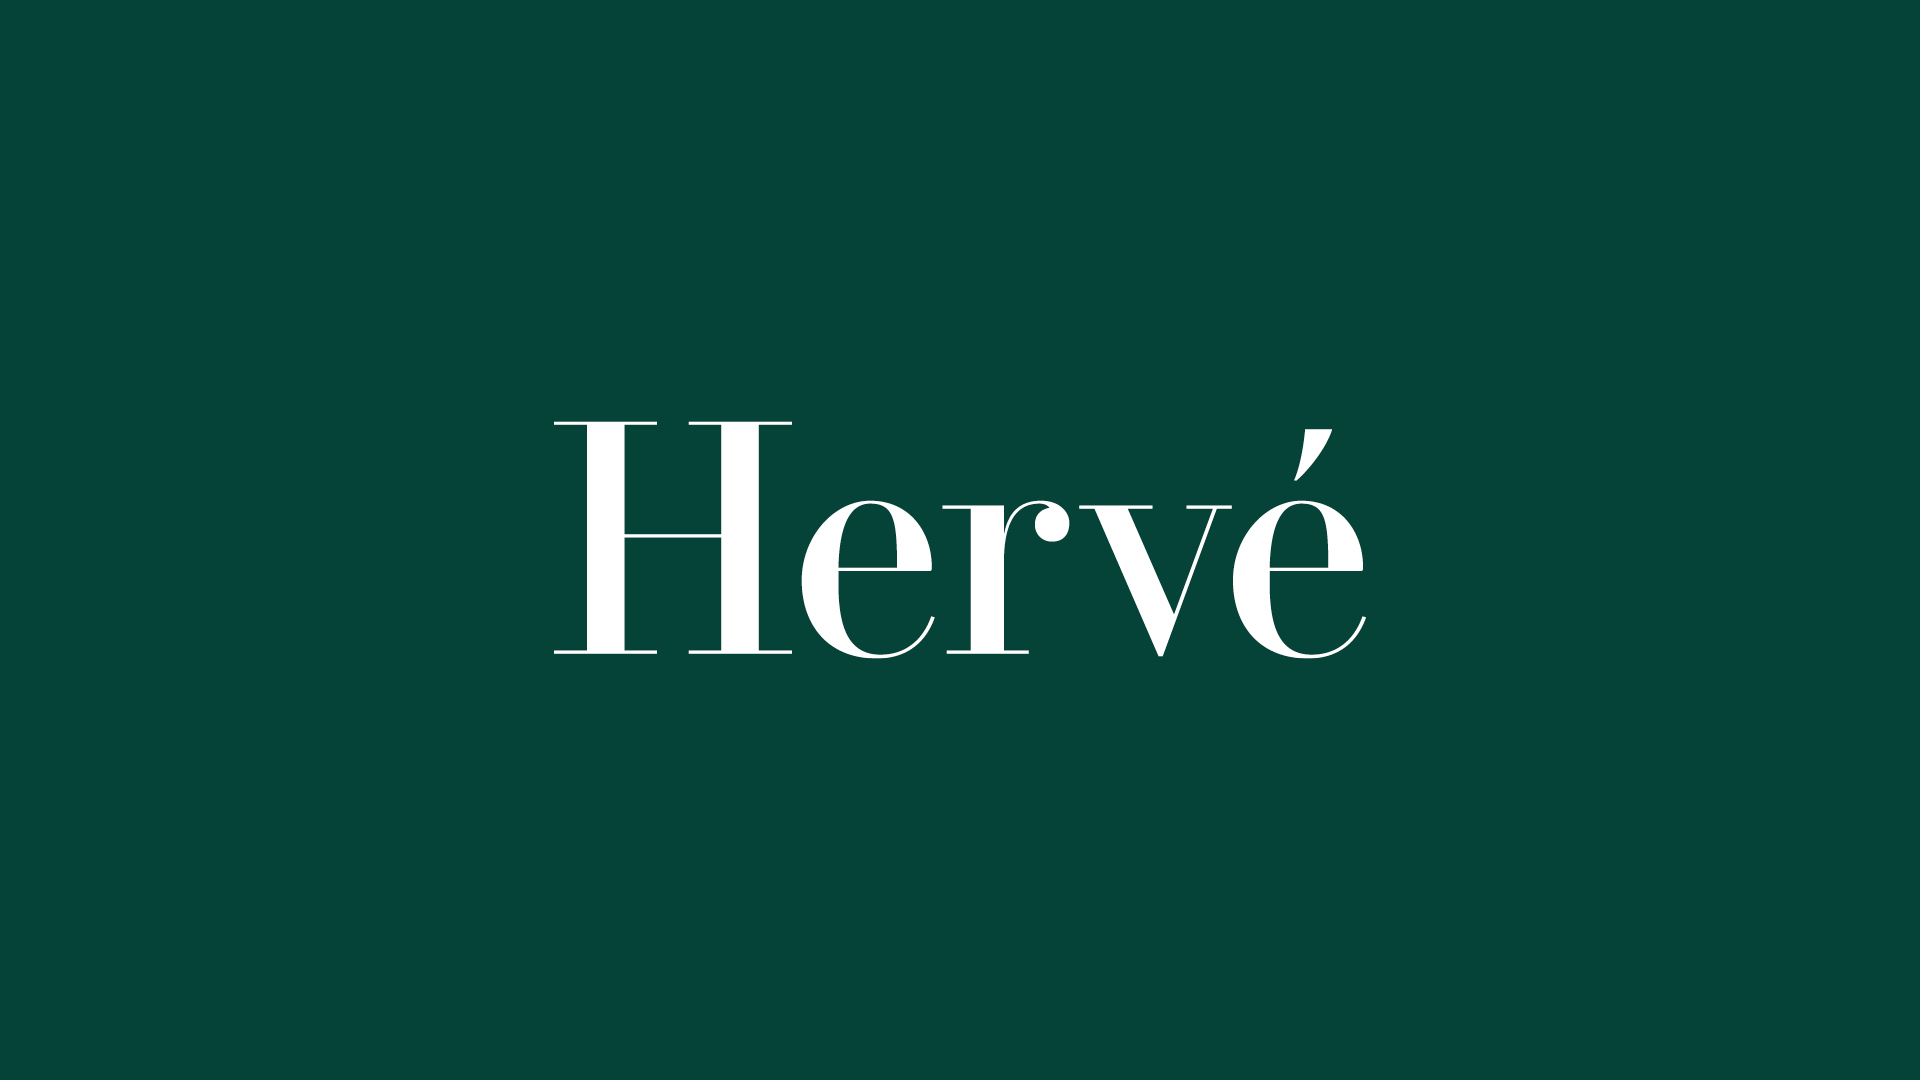 Hervé logo on green background